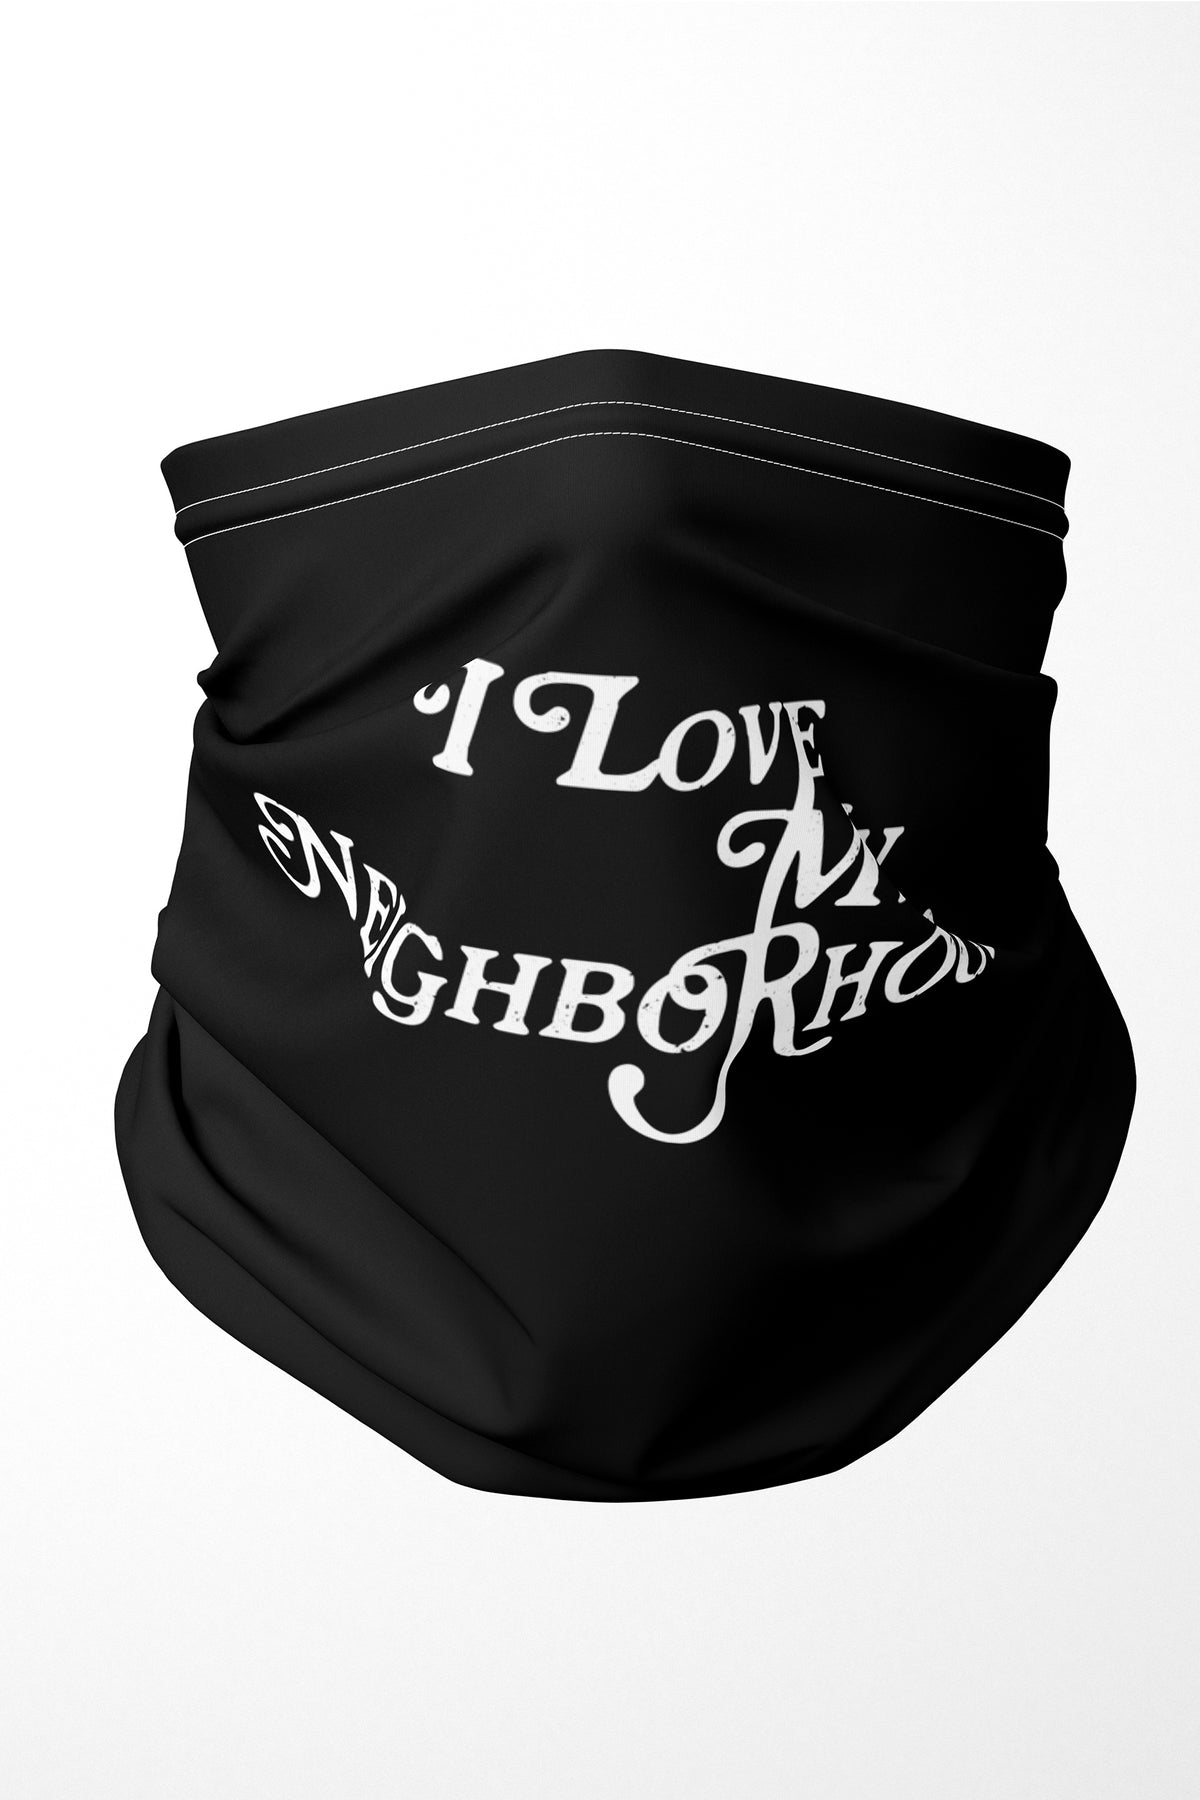 I Love My Neighborhood Premium Adults Face Mask Neck Gaiter